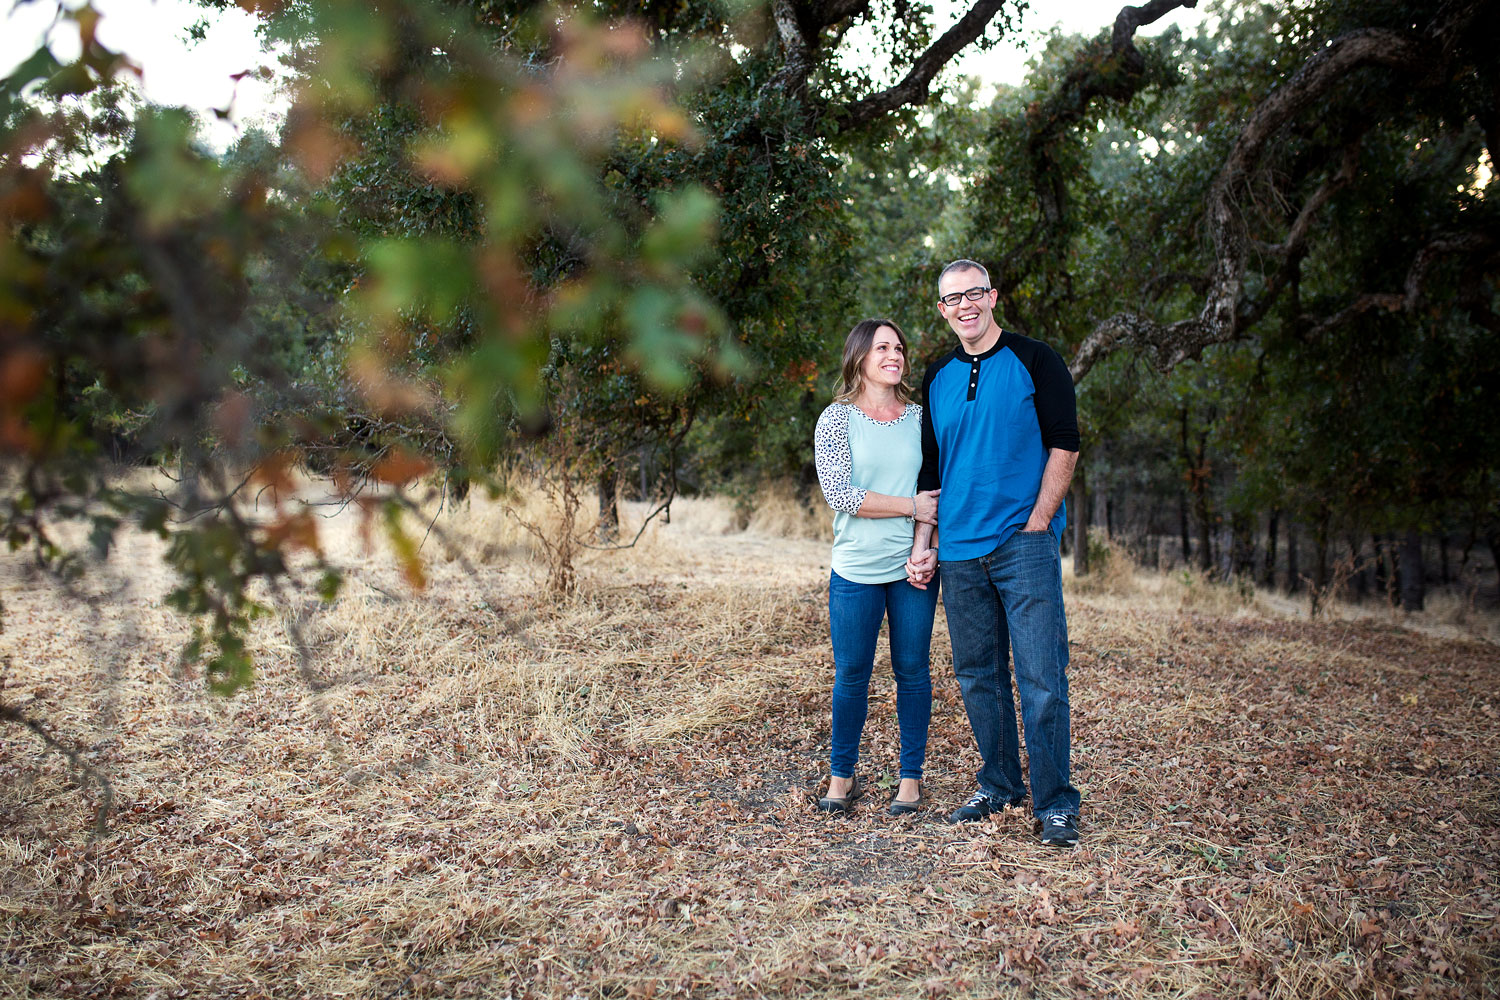 Roseville California Family Photographer, Amy Wright Photography